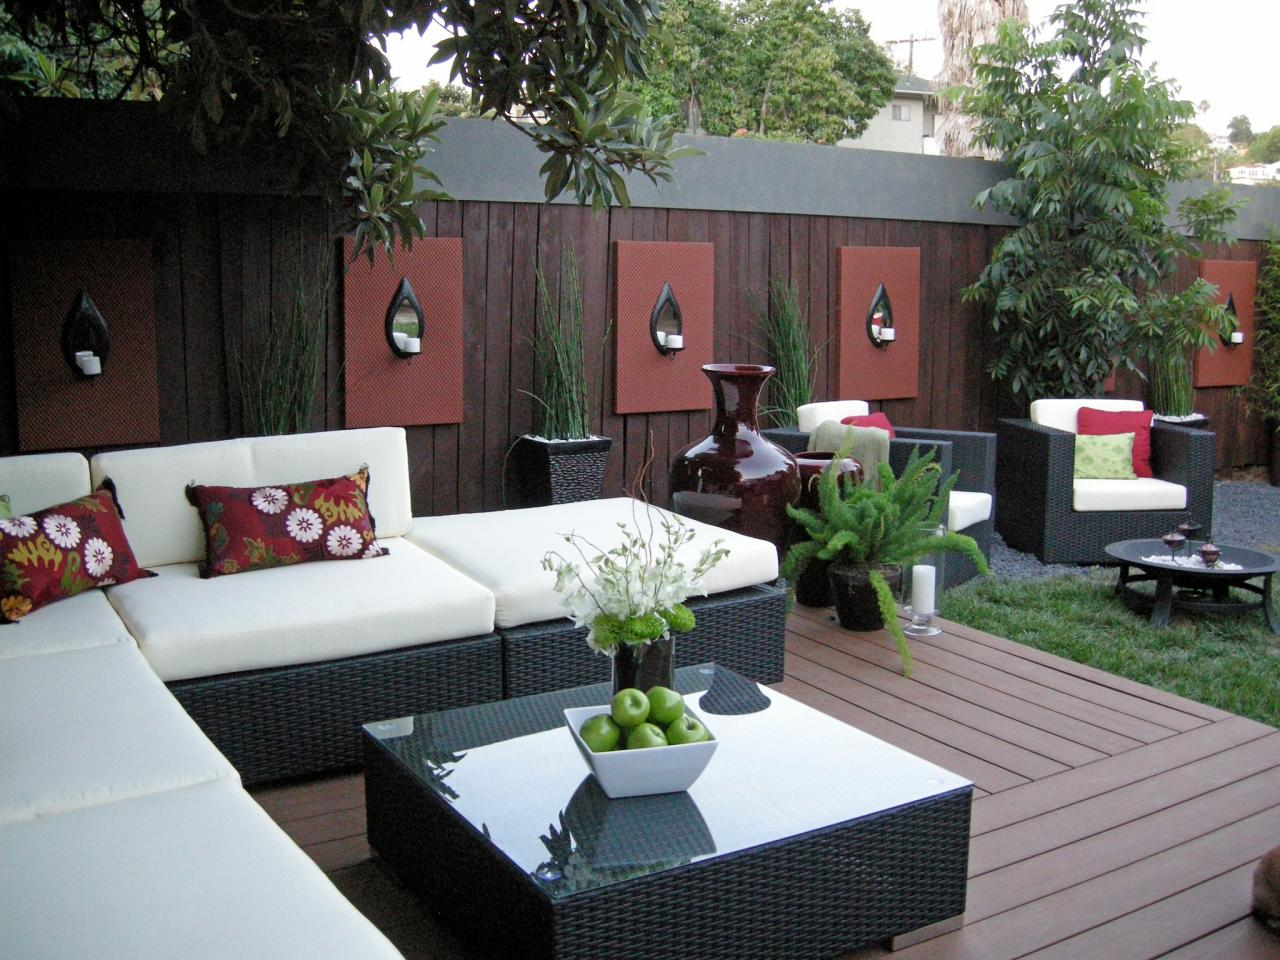 Most Stunning Courtyard Interior Wall Decorating Ideas ... on Backyard Wall Decor Ideas  id=79519